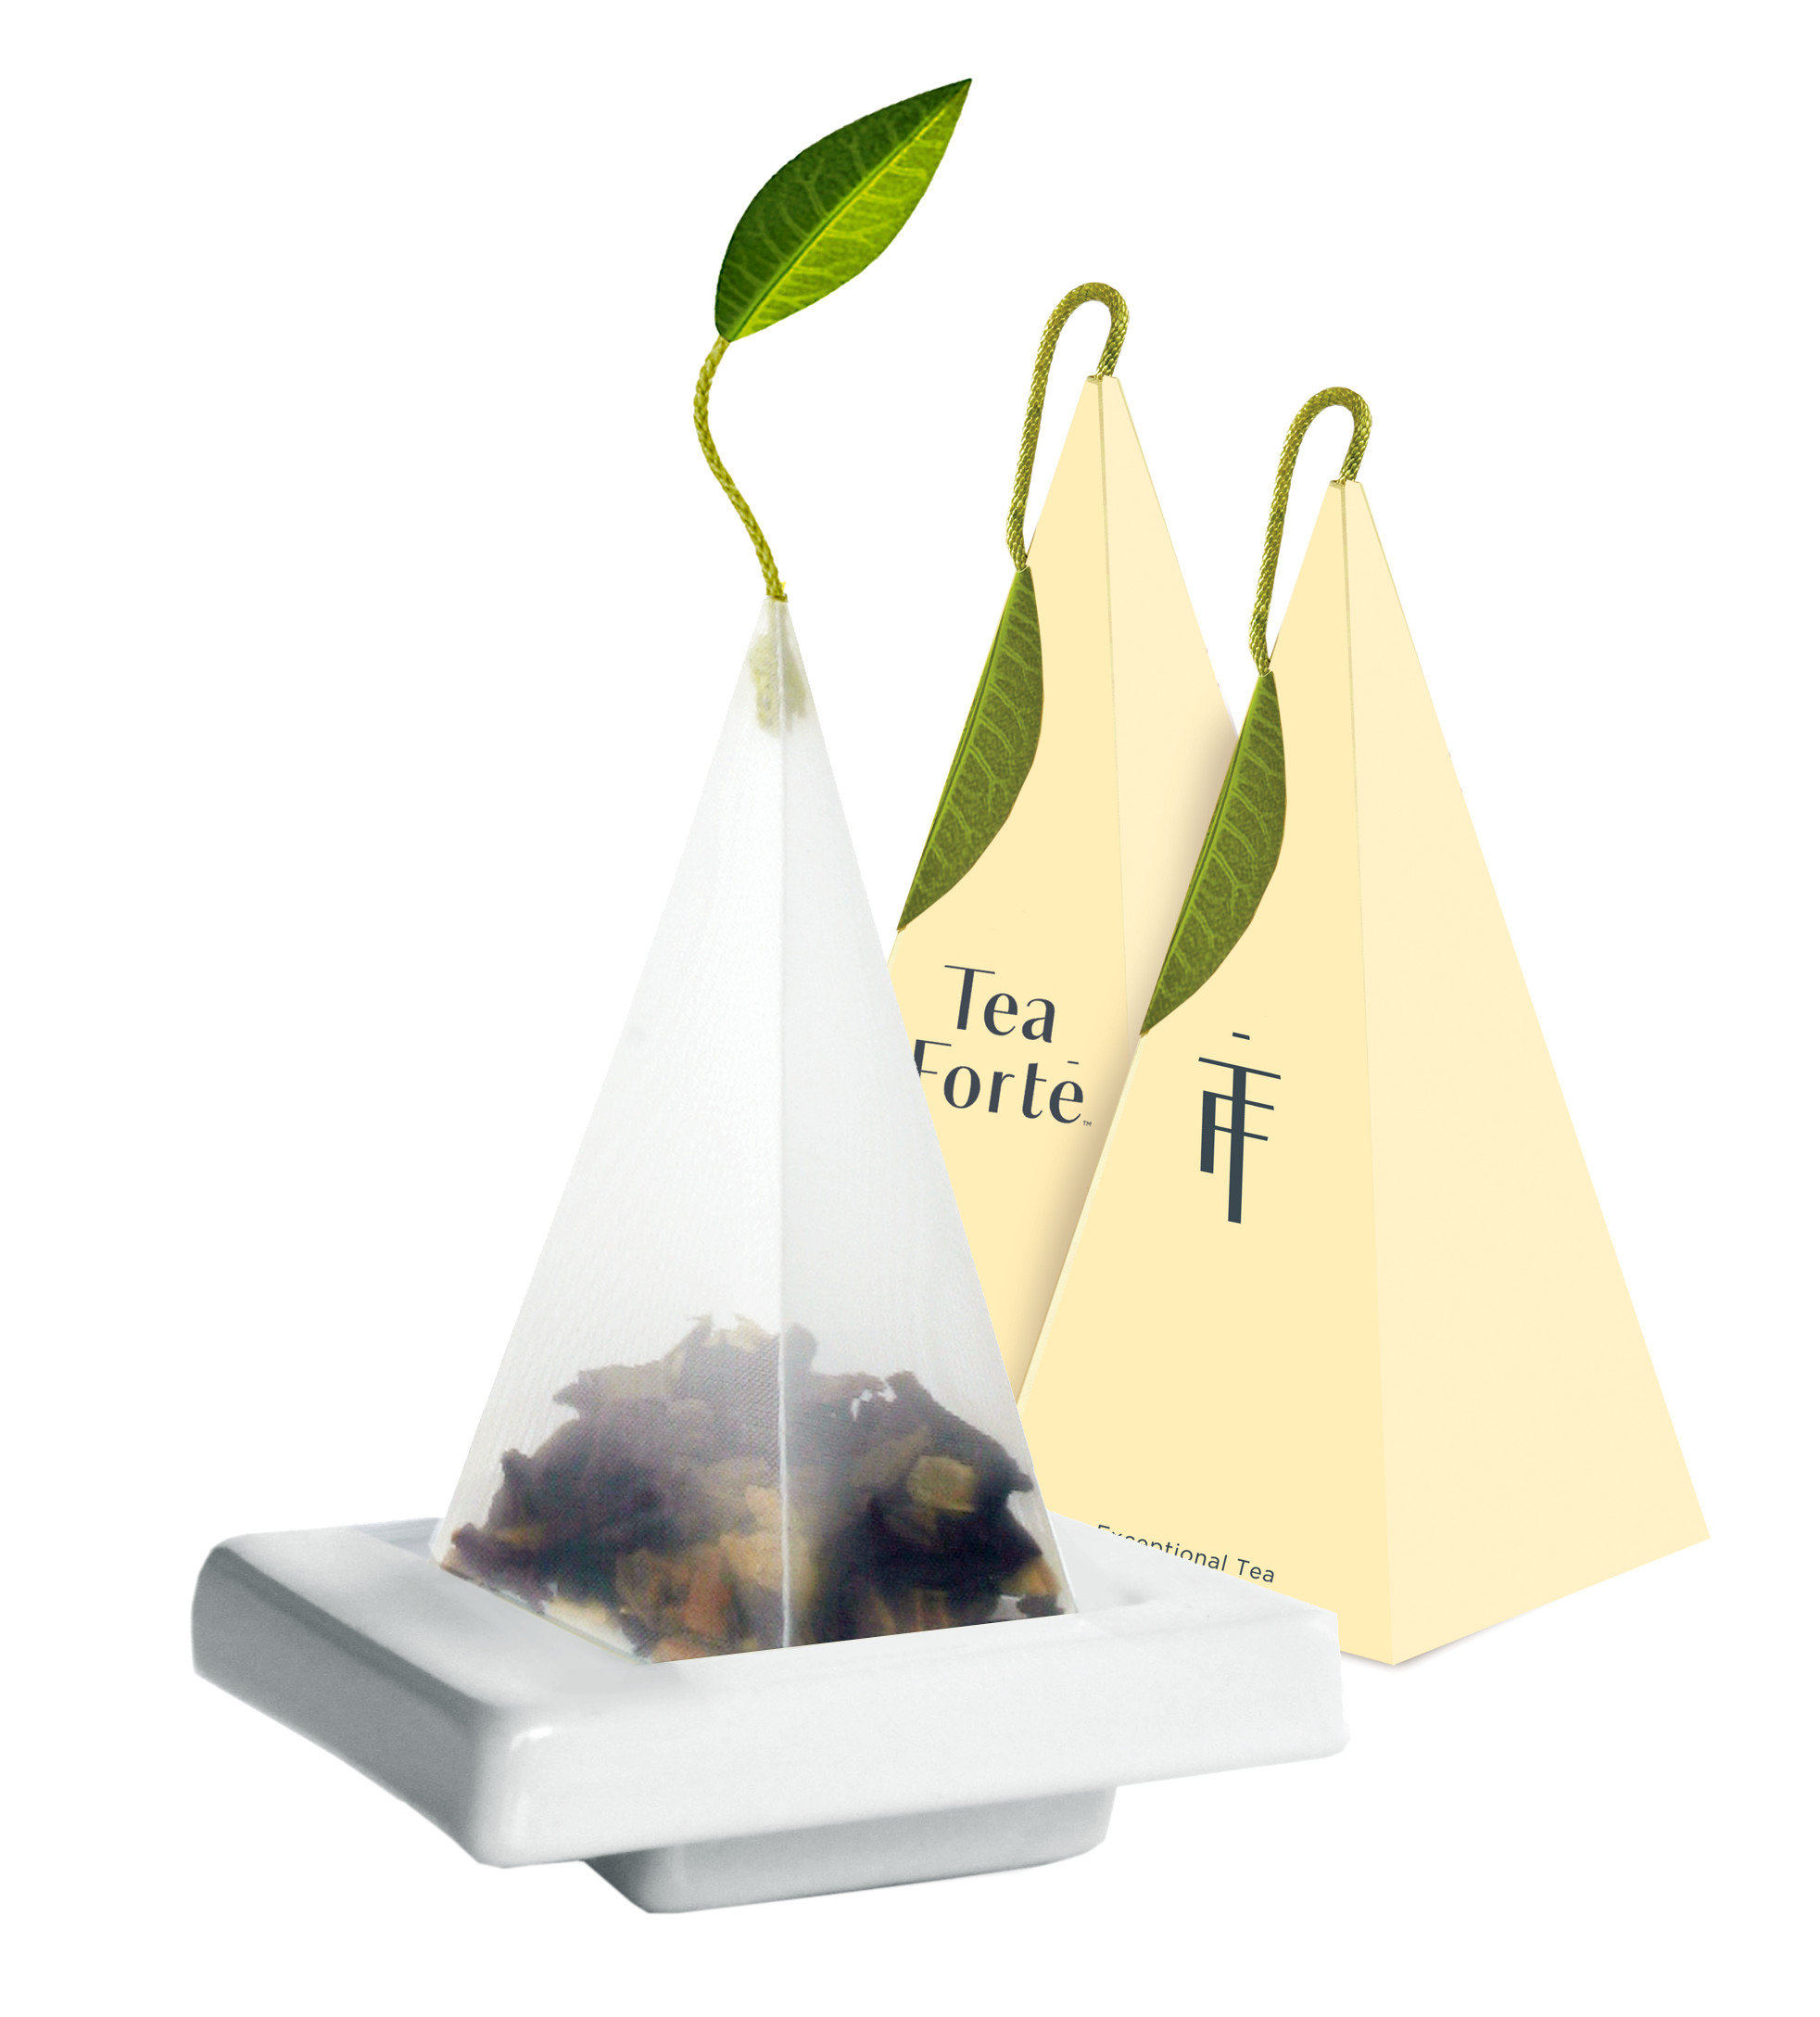 Oasis Green Herbal Tea-Licious Pyramid Bag Favor